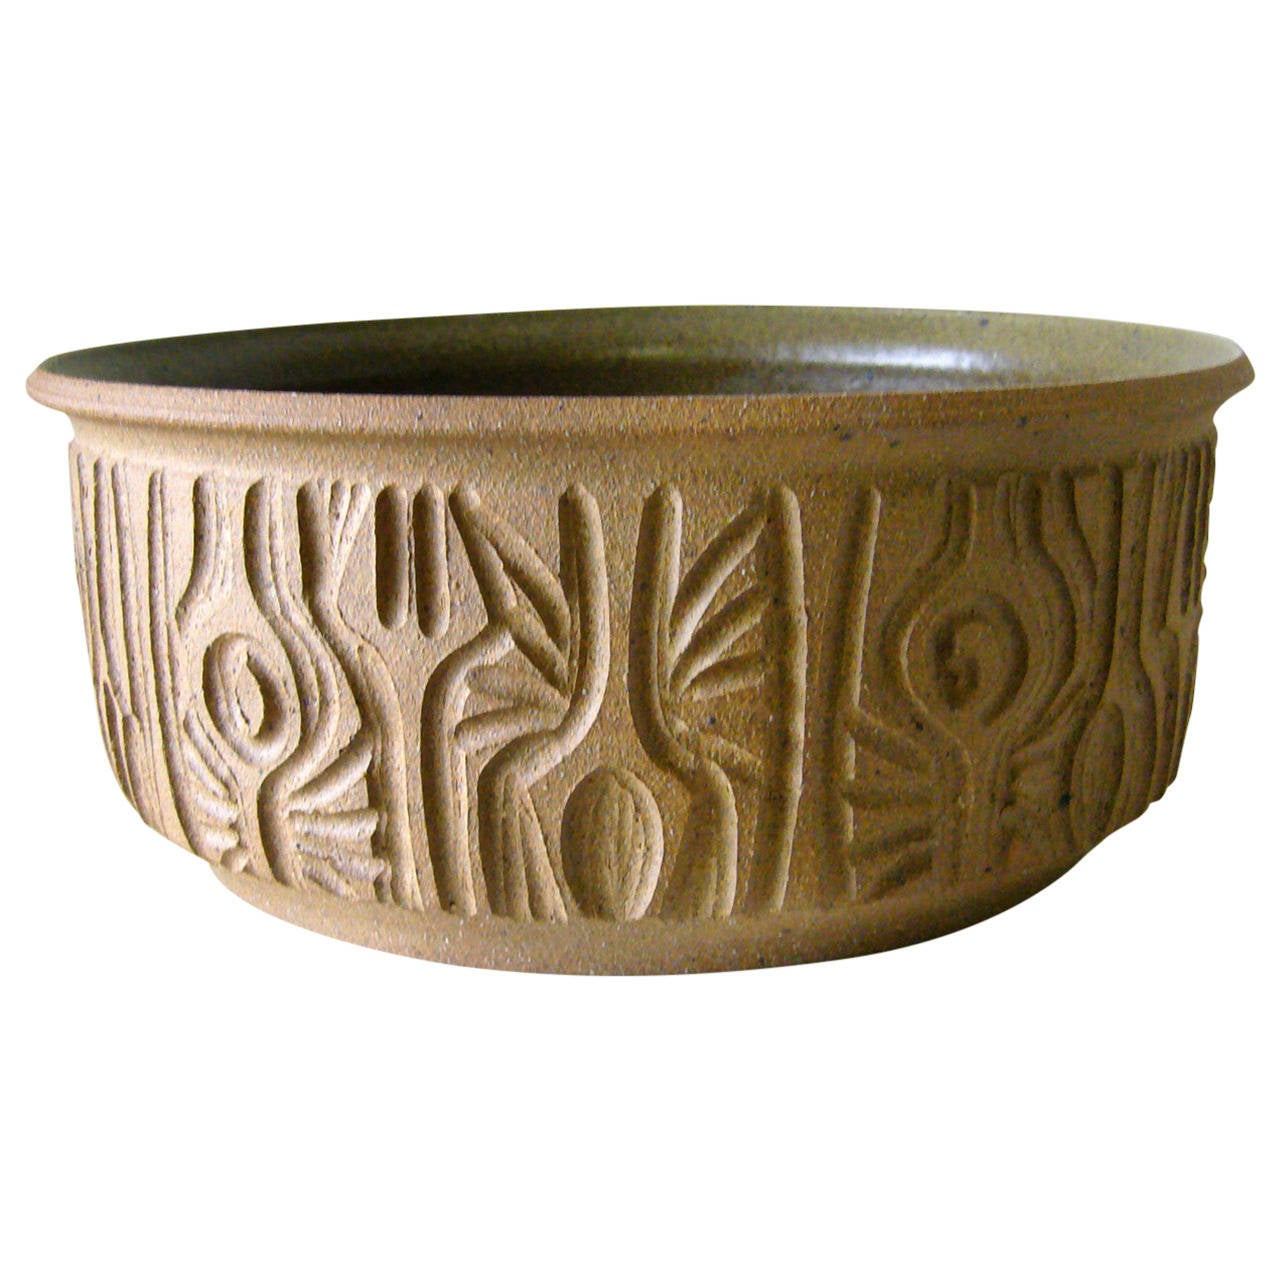 Robert maxwell hand carved studio pottery bowl at stdibs